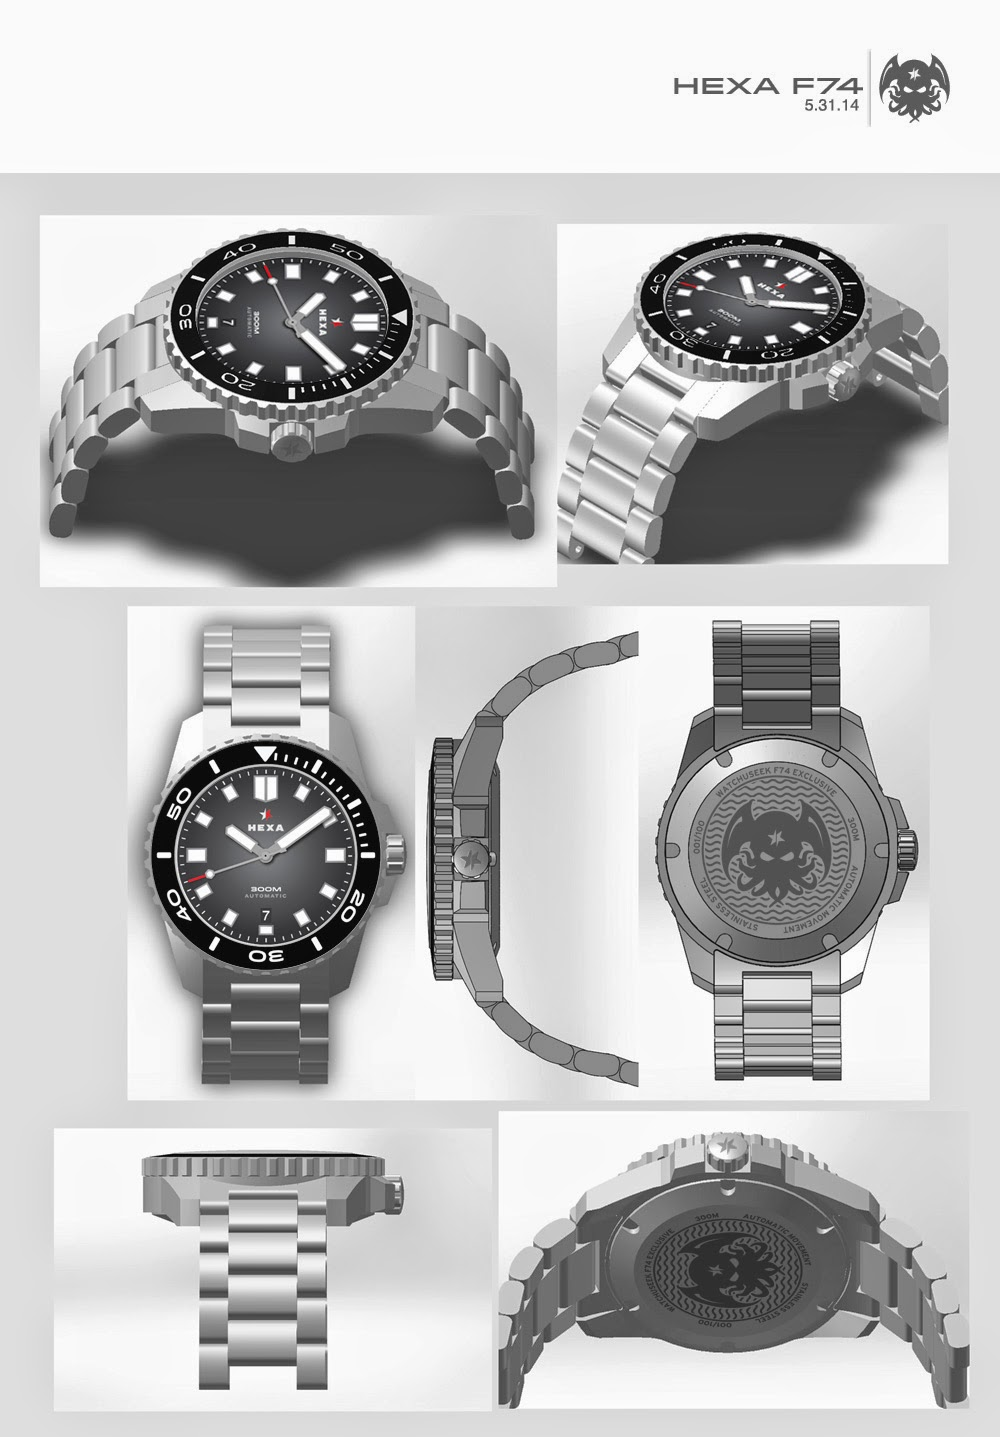 hexa watches f74 diver